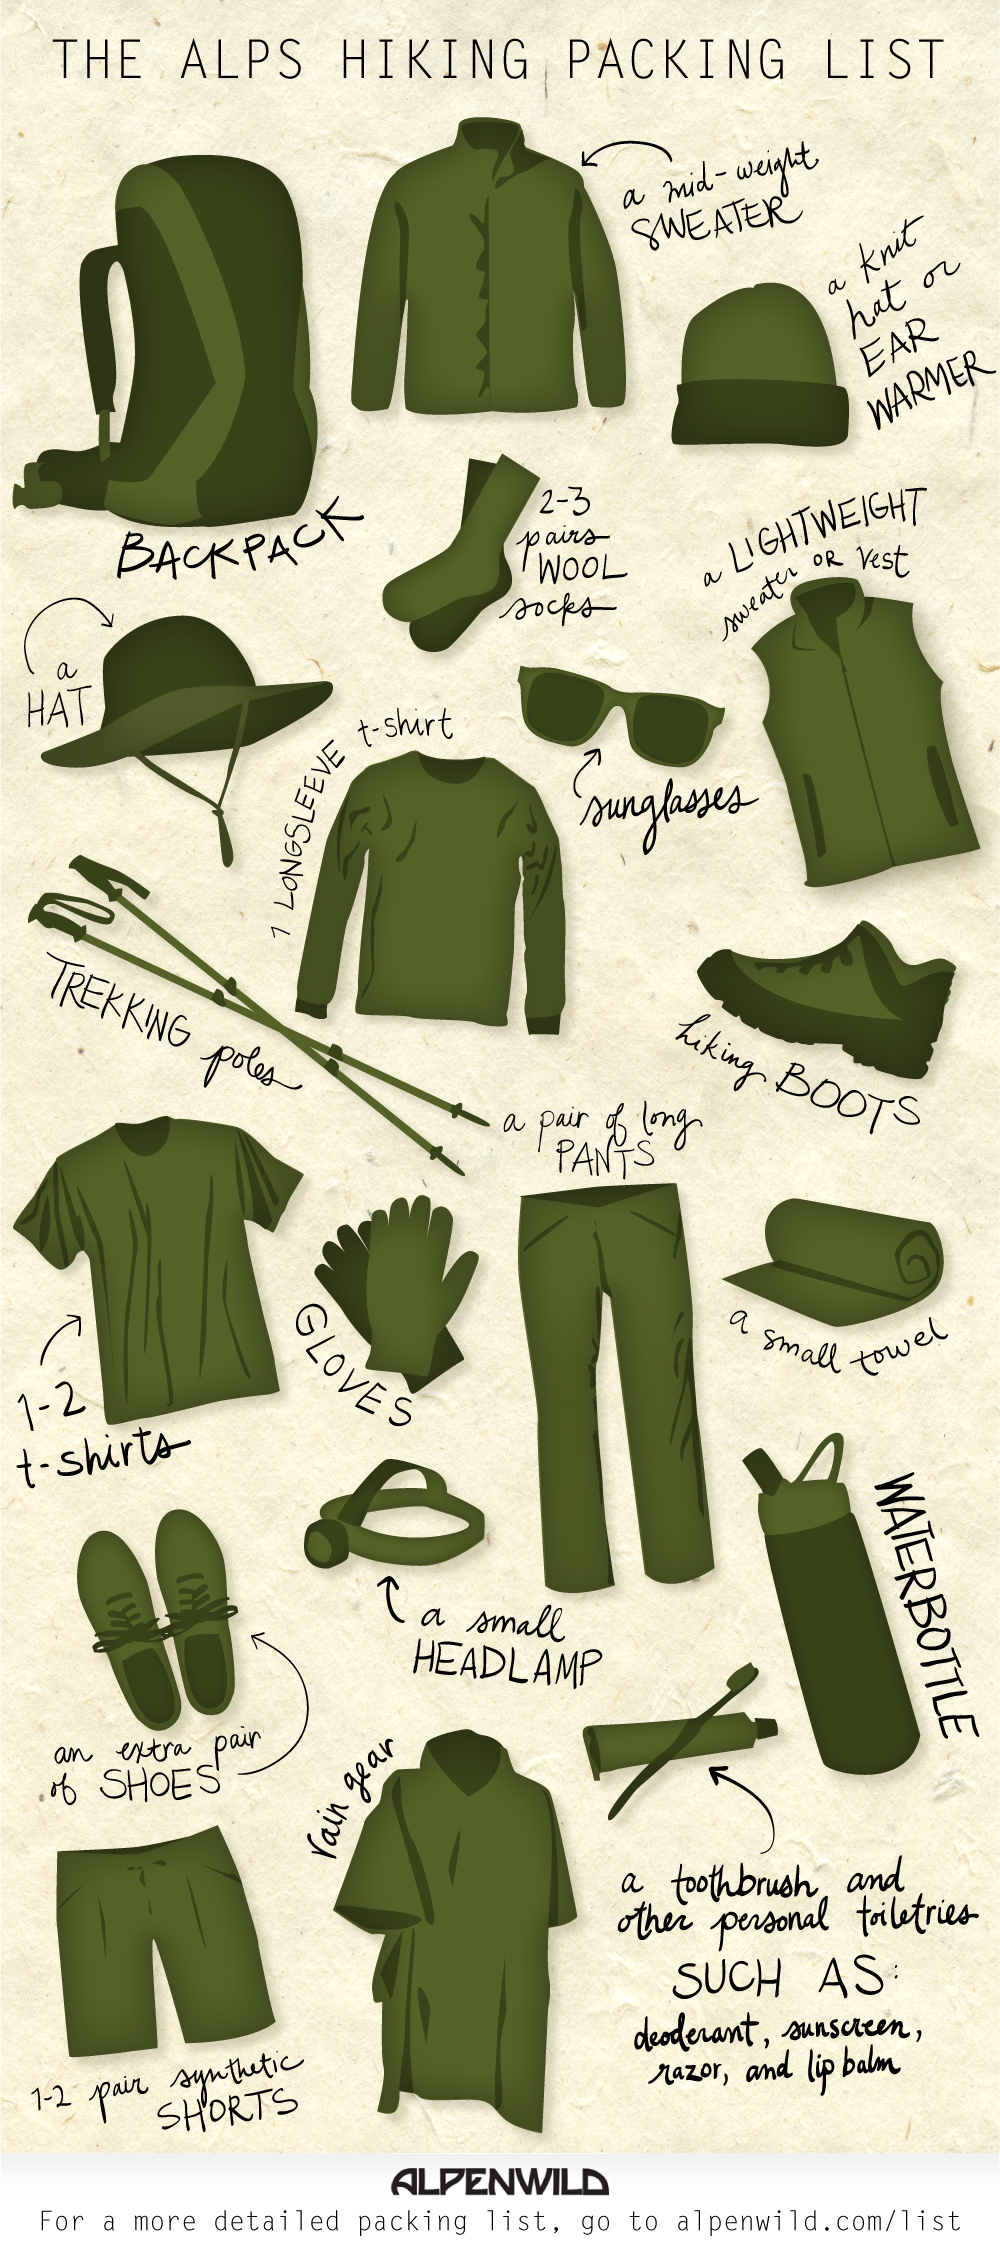 Packing List Hiking Tours Haute Route Alps Tours